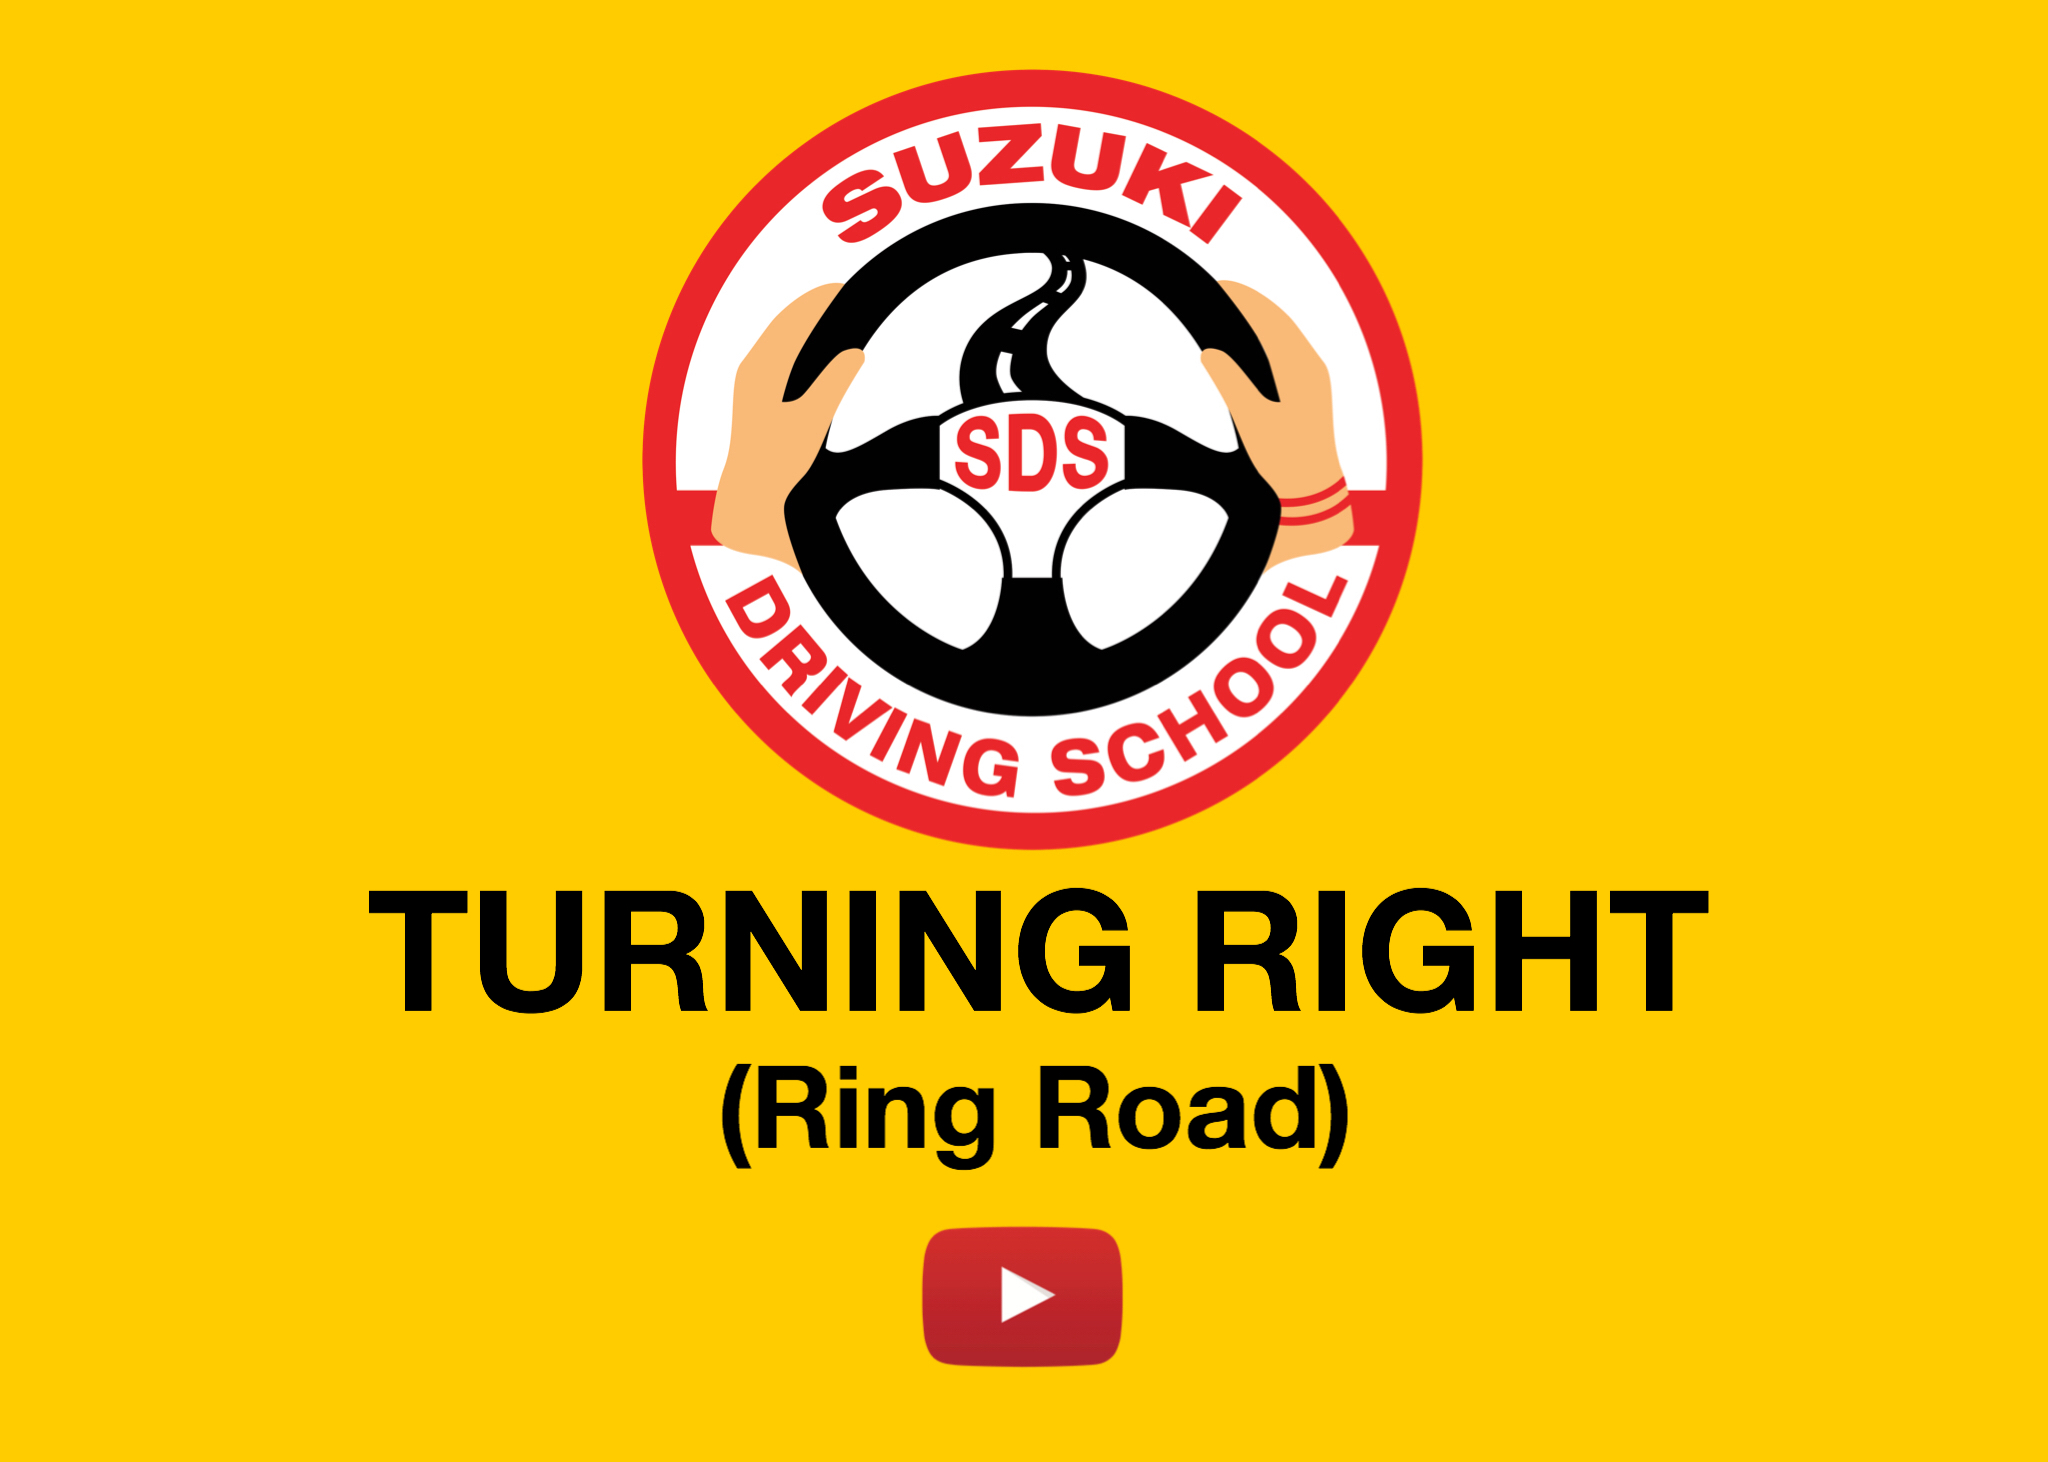 TURNING RIGHT (ring road)